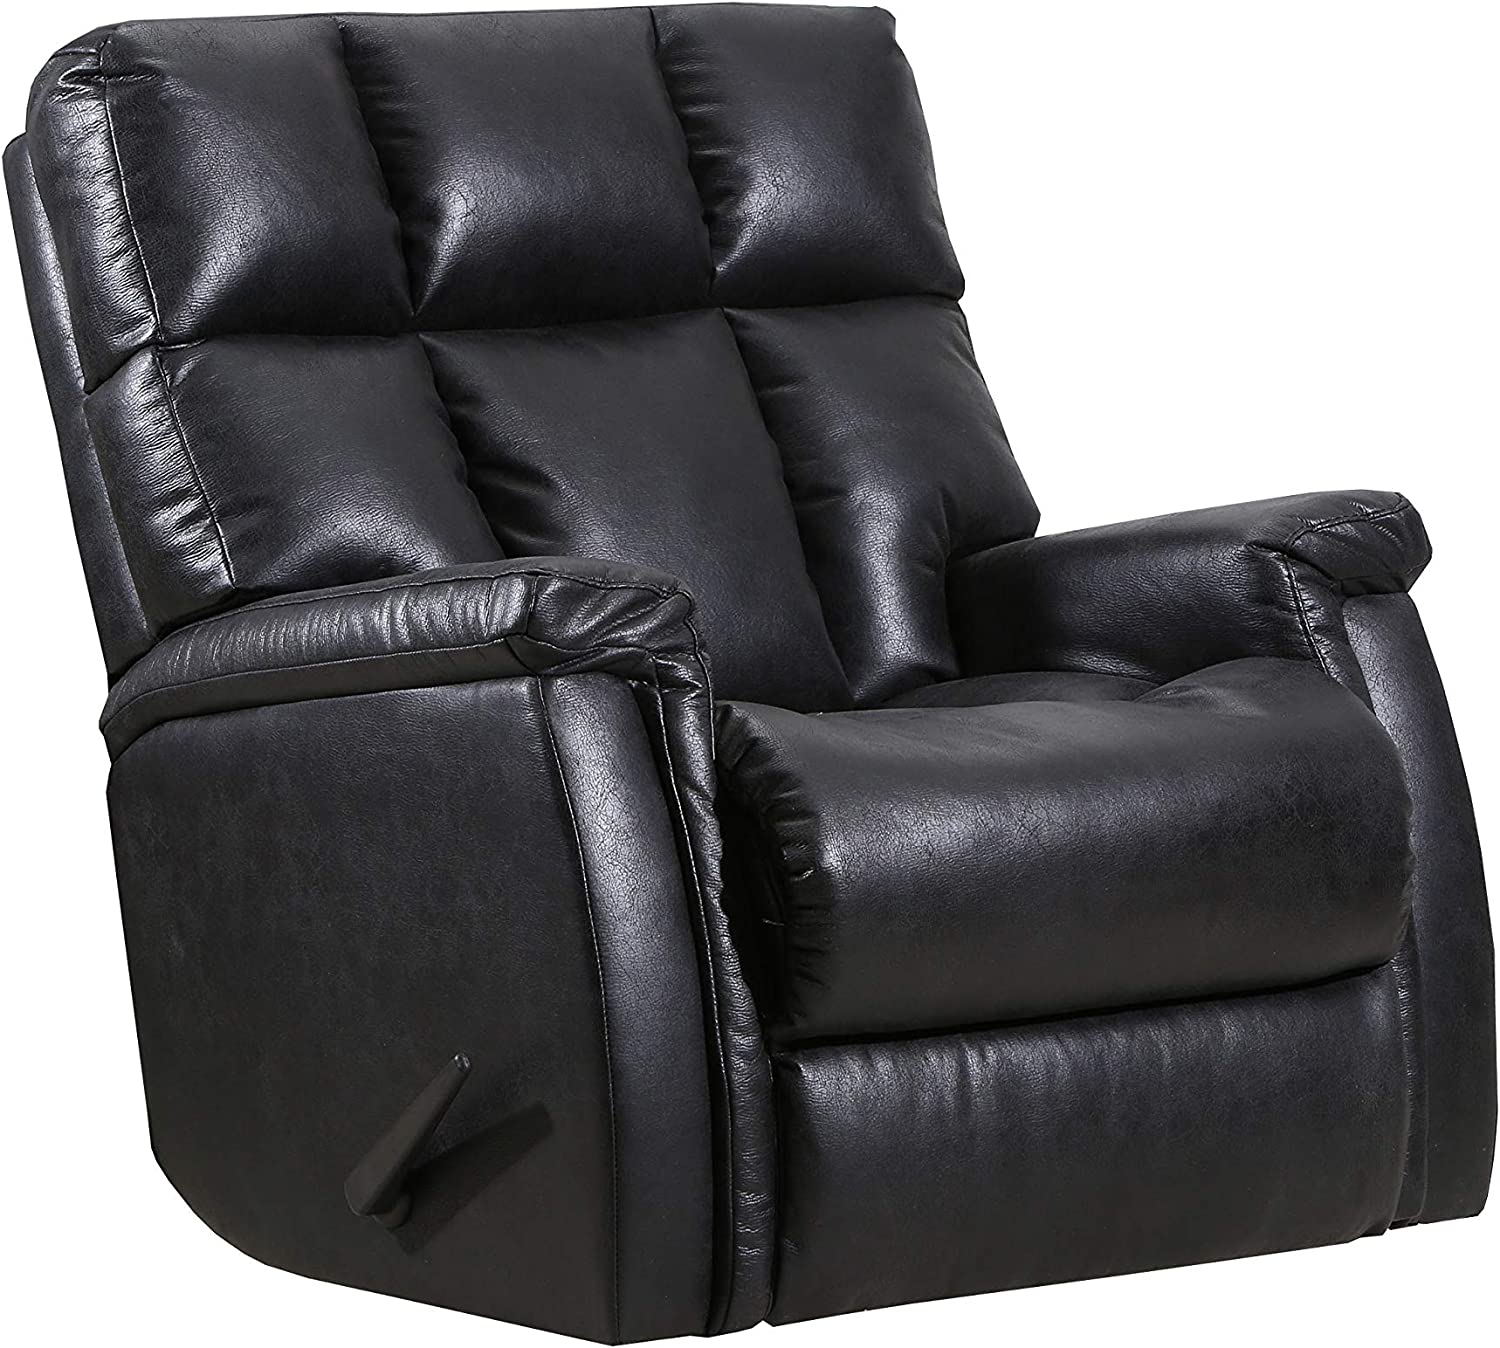 Lane Home Furnishings Rocker Recliner